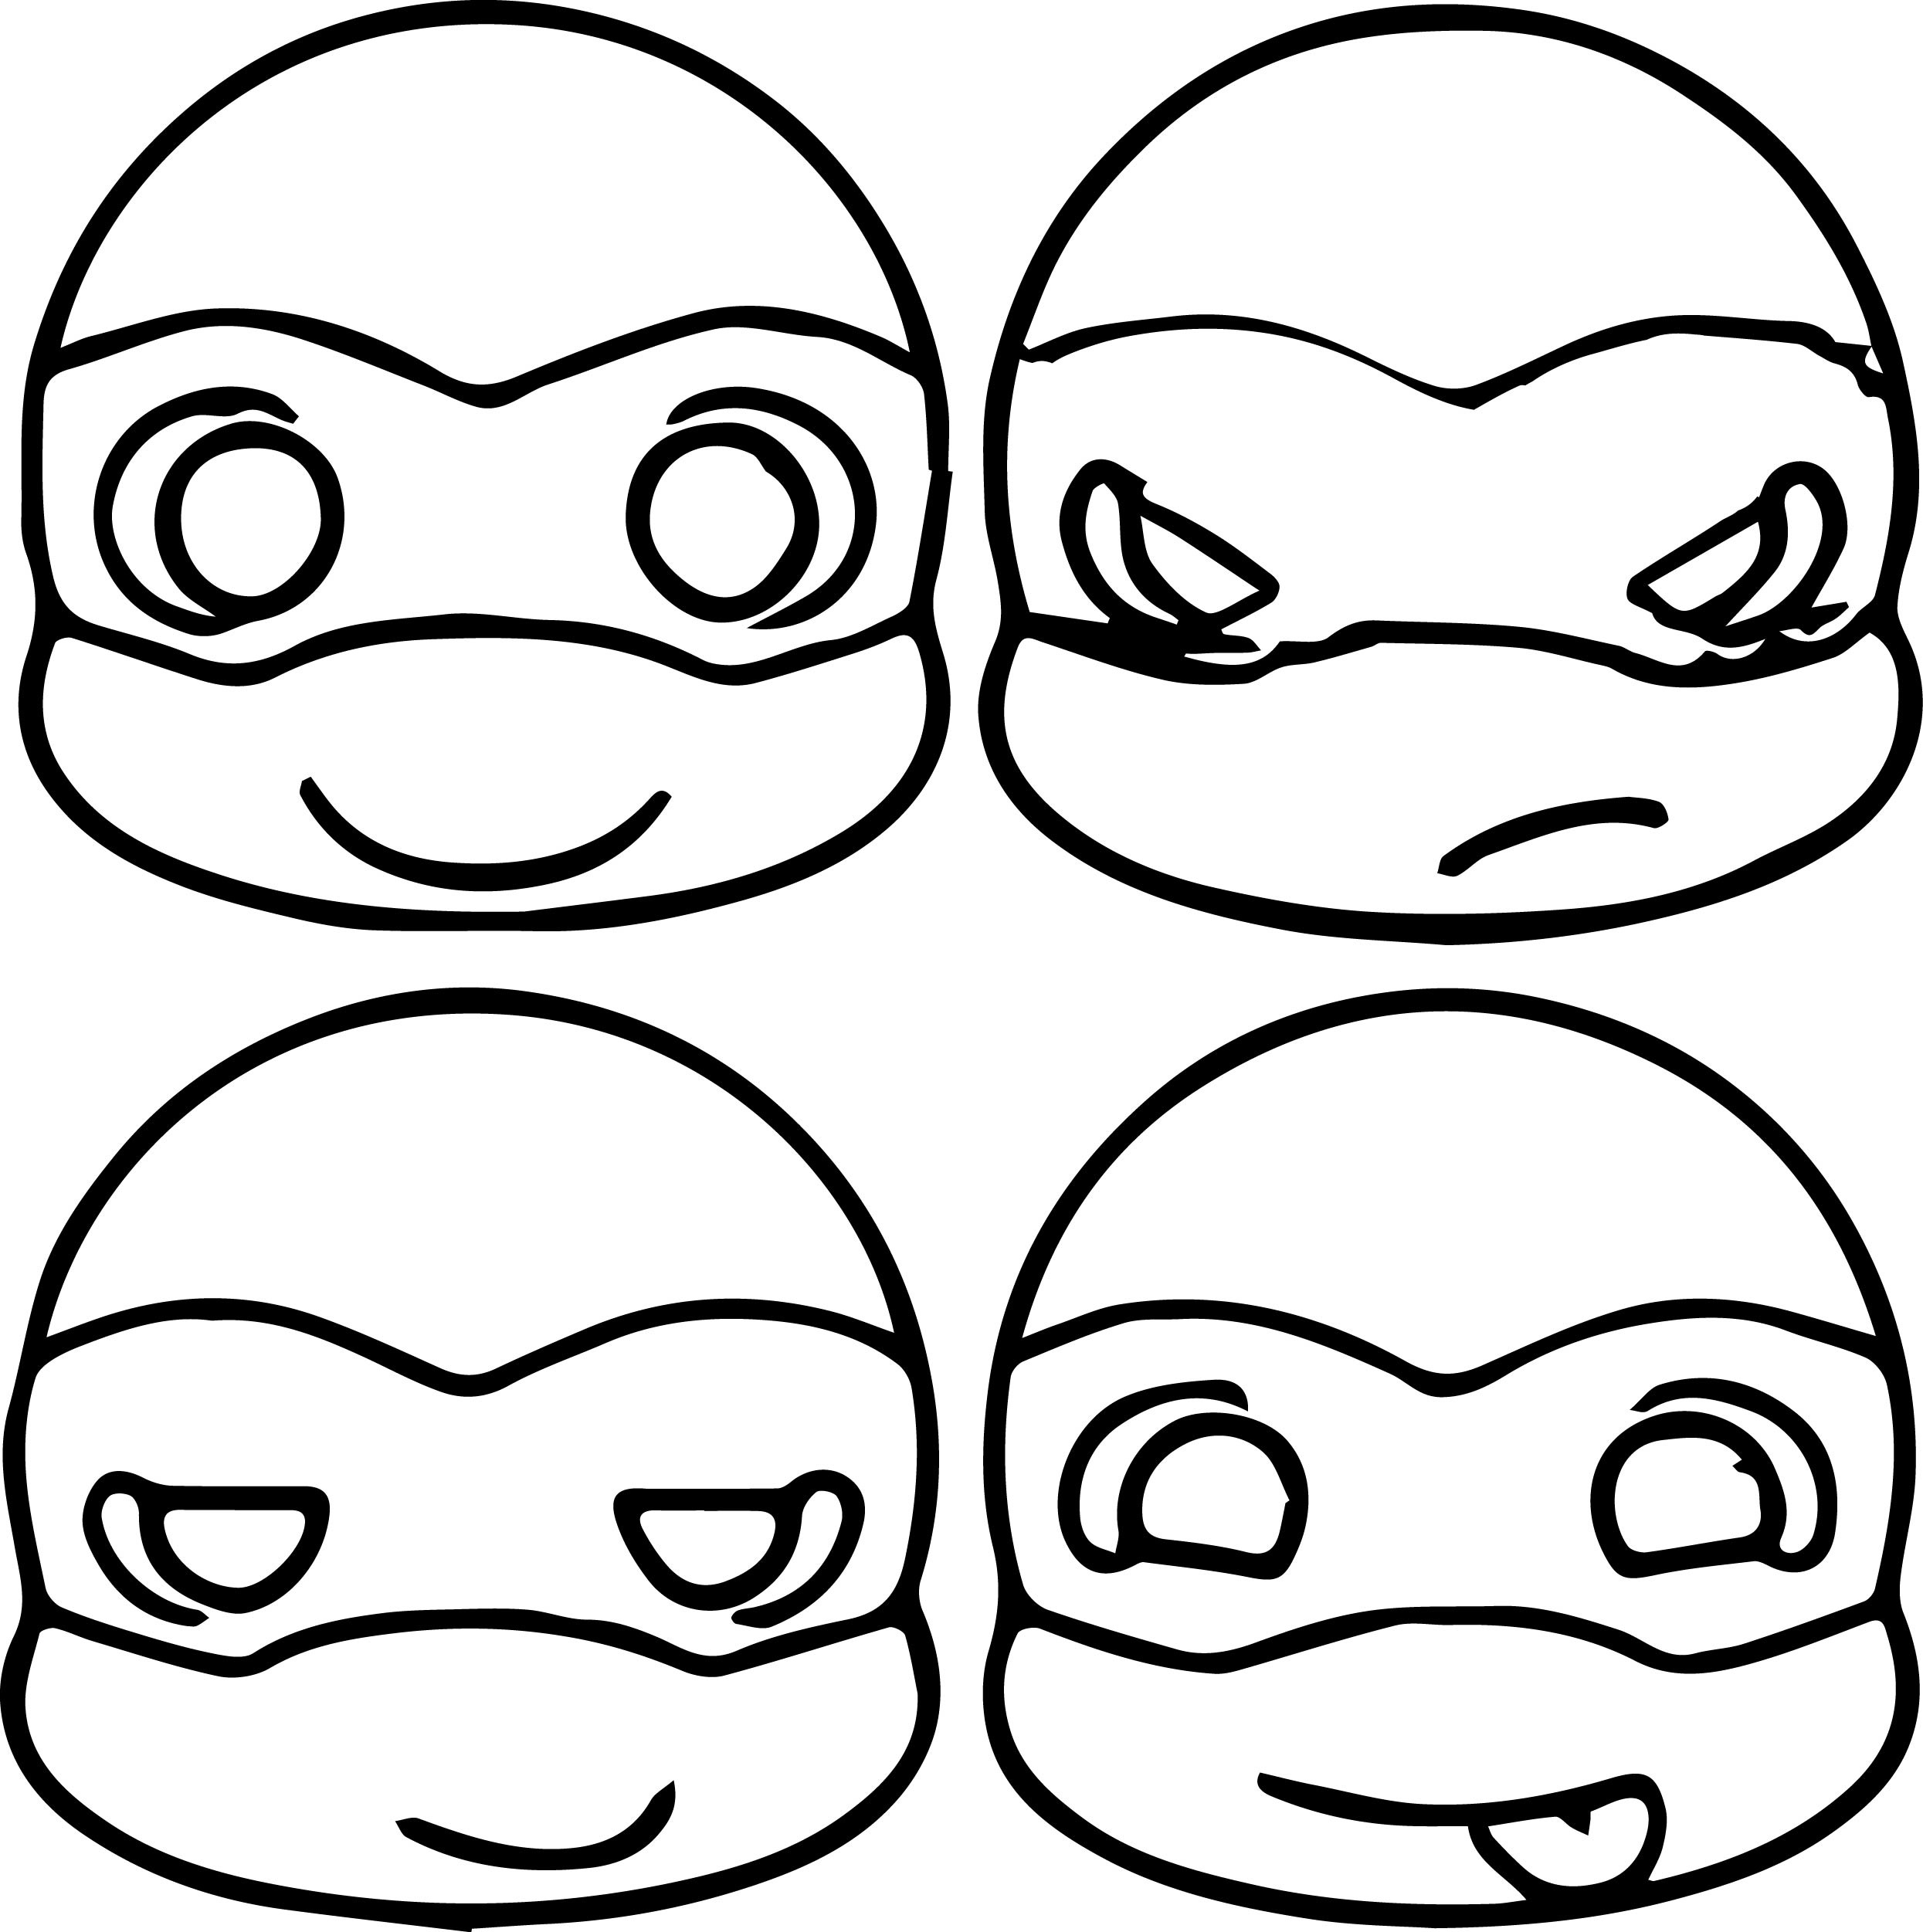 2490x2502 Ninja Turtle Coloring Pages E Teenage With Valentine